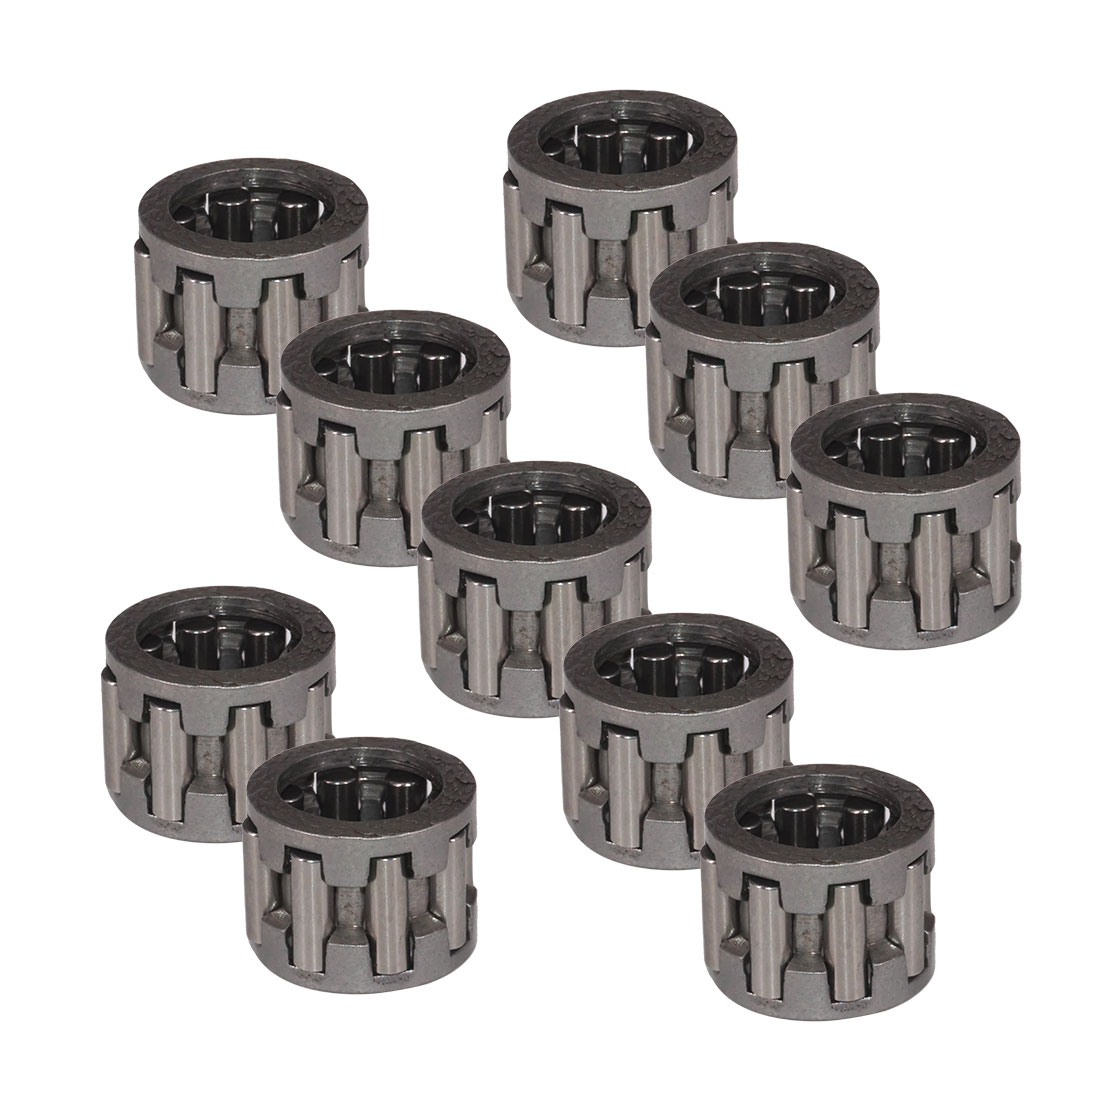 LETAOSK 10pcs Clutch Needle Cage Bearing Fit For Stihl MS361 044 046 MS440 MS460 Chainsaw